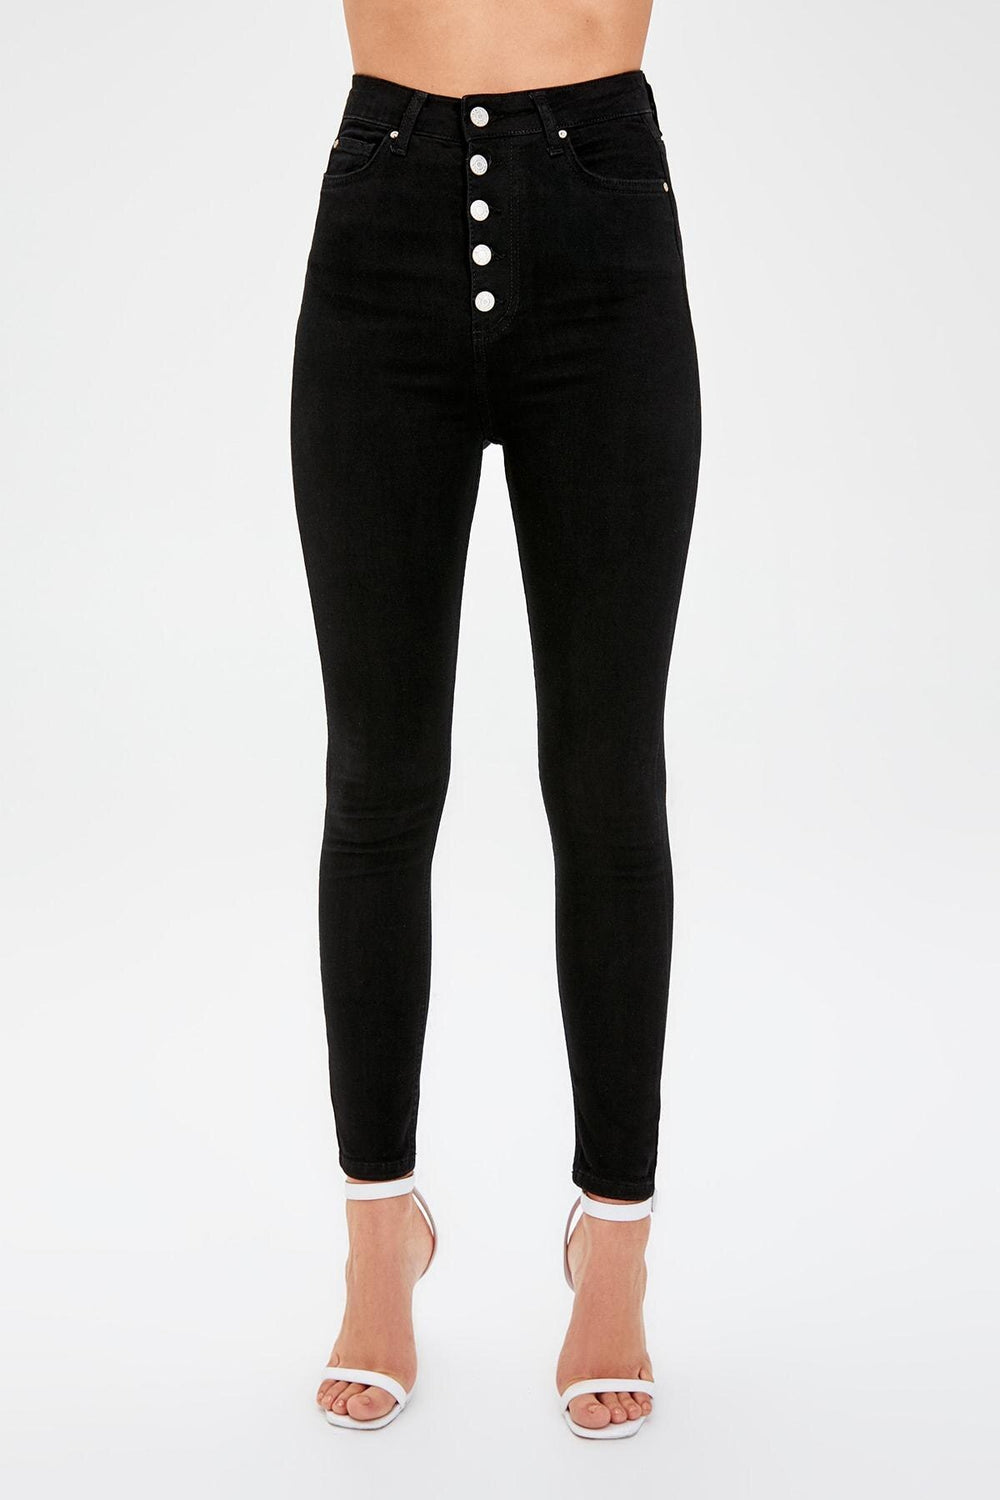 Miss Zut Miss Zut Black Front Button High Waist Skinny Jeans Miss Zut &CO